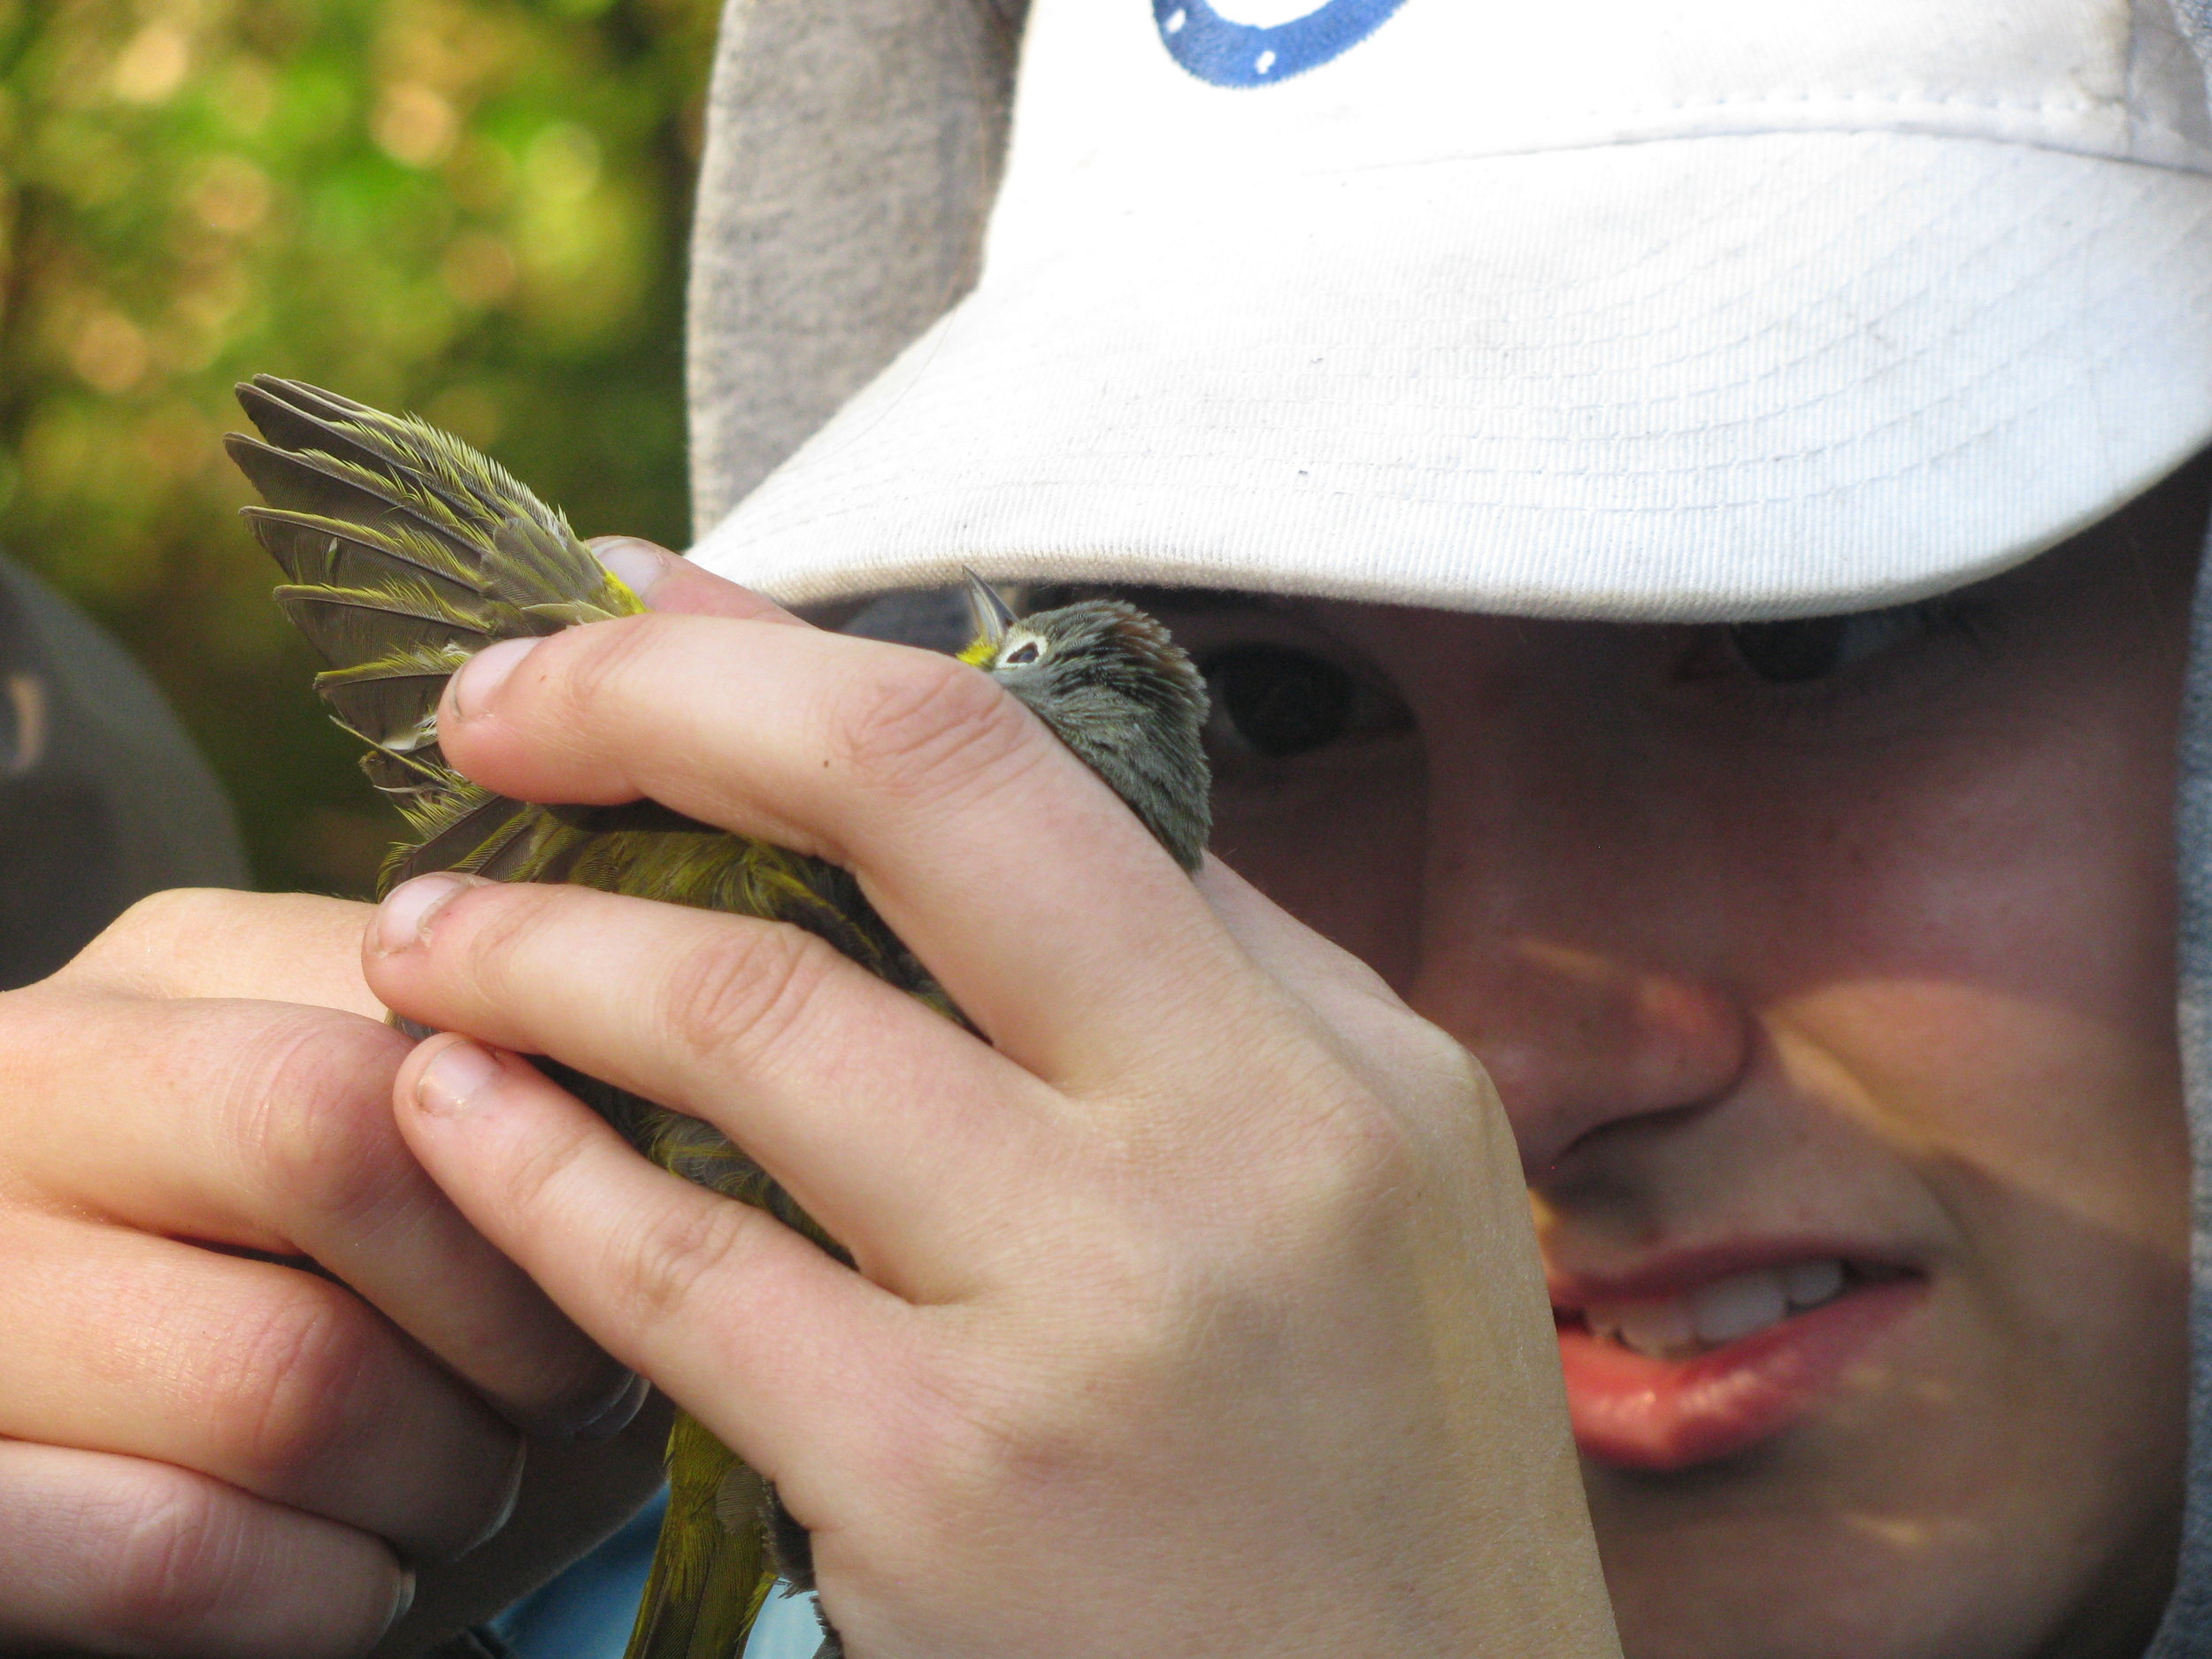 """A researcher from SUNY Albany collects a DNA sample for research into boreal bird populations. These data contributed to the identification of a hybrid species described in """" A new wood warbler hybrid ( Oreothlypis celata  x  O. ruficapilla ) from the Adirondack mountains, New York ."""""""